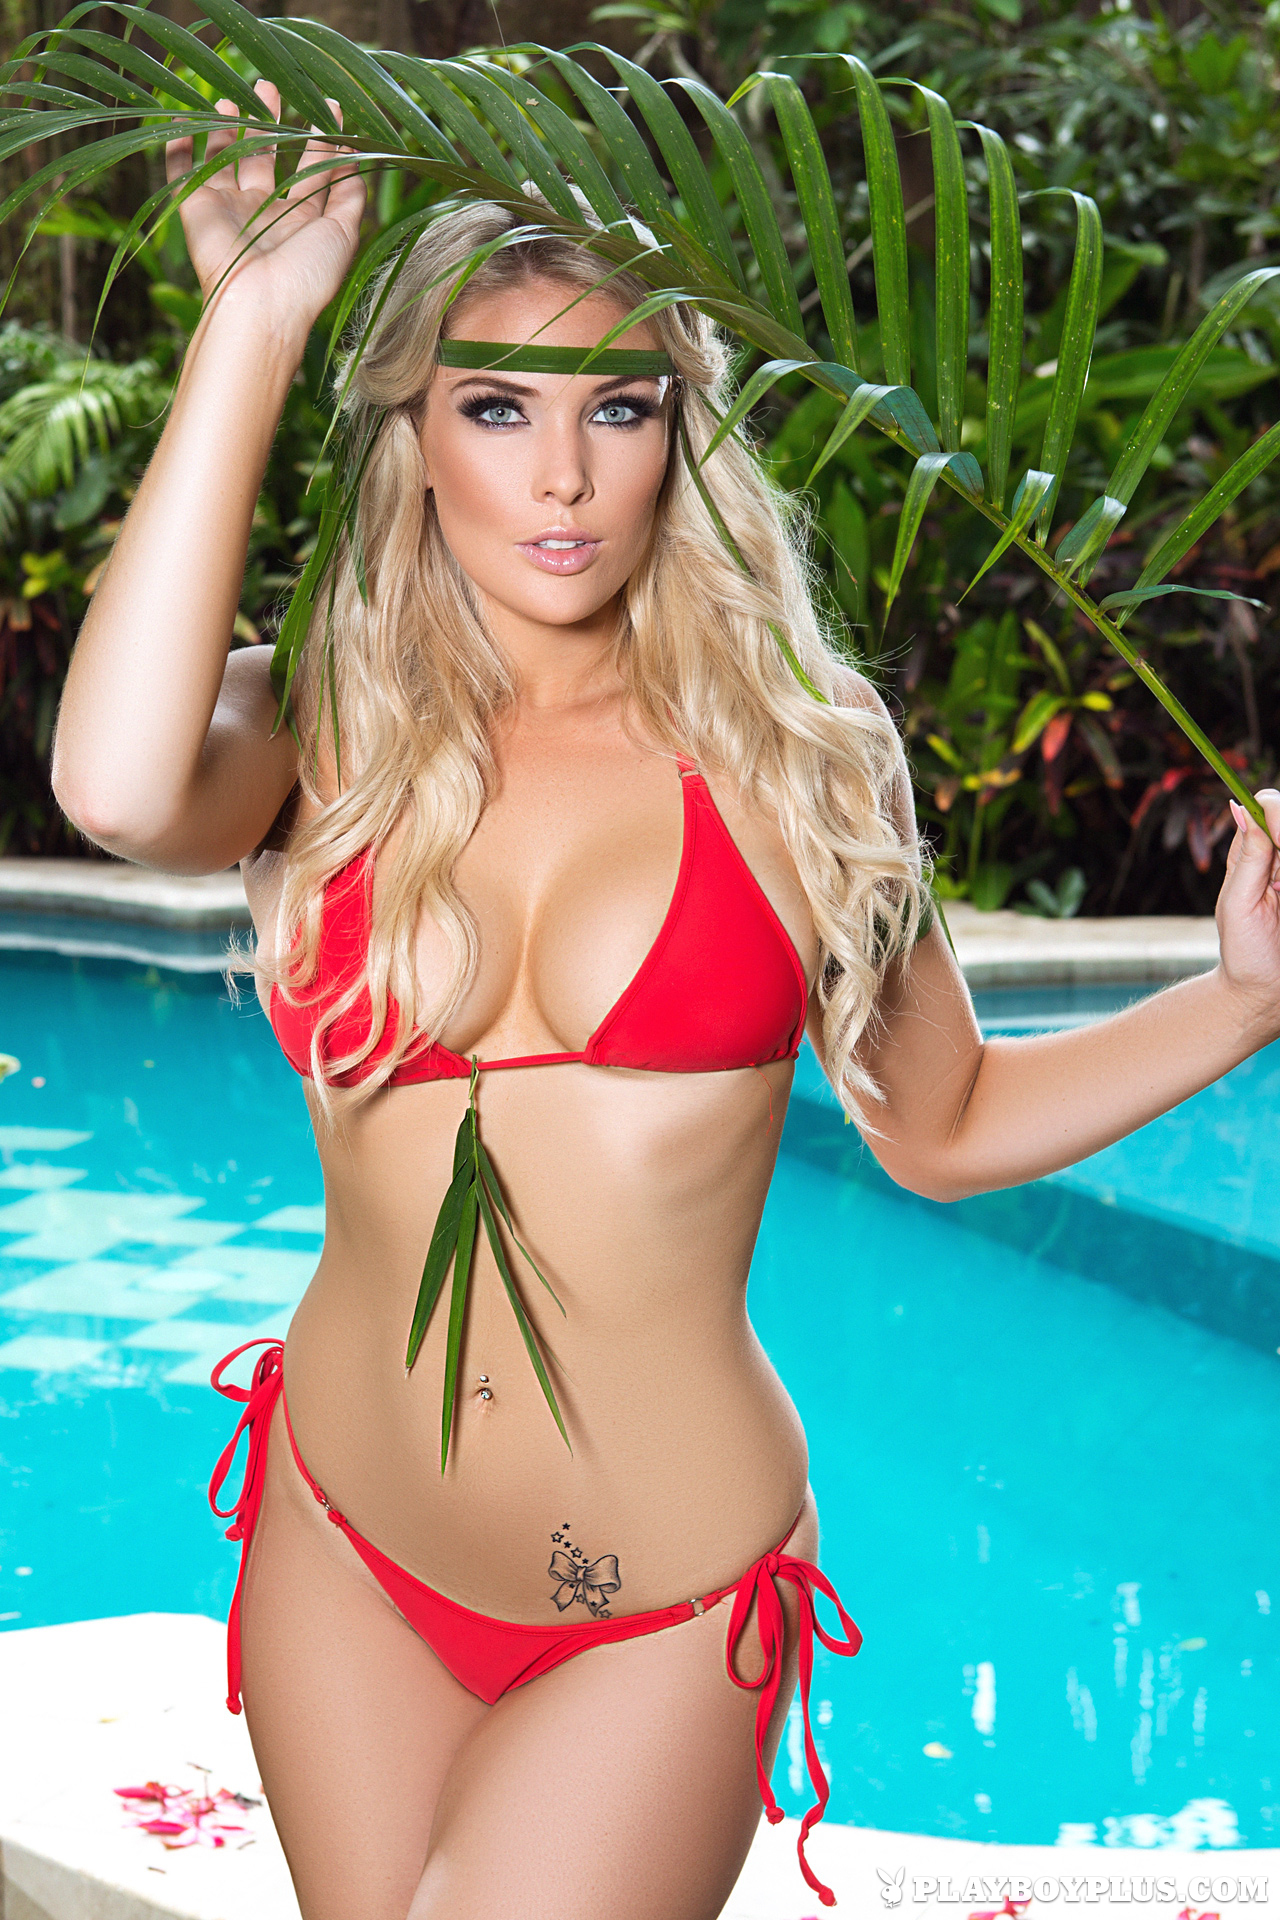 Playboy Cybergirl - Rebekah Cotton takes off red bikini by a pool